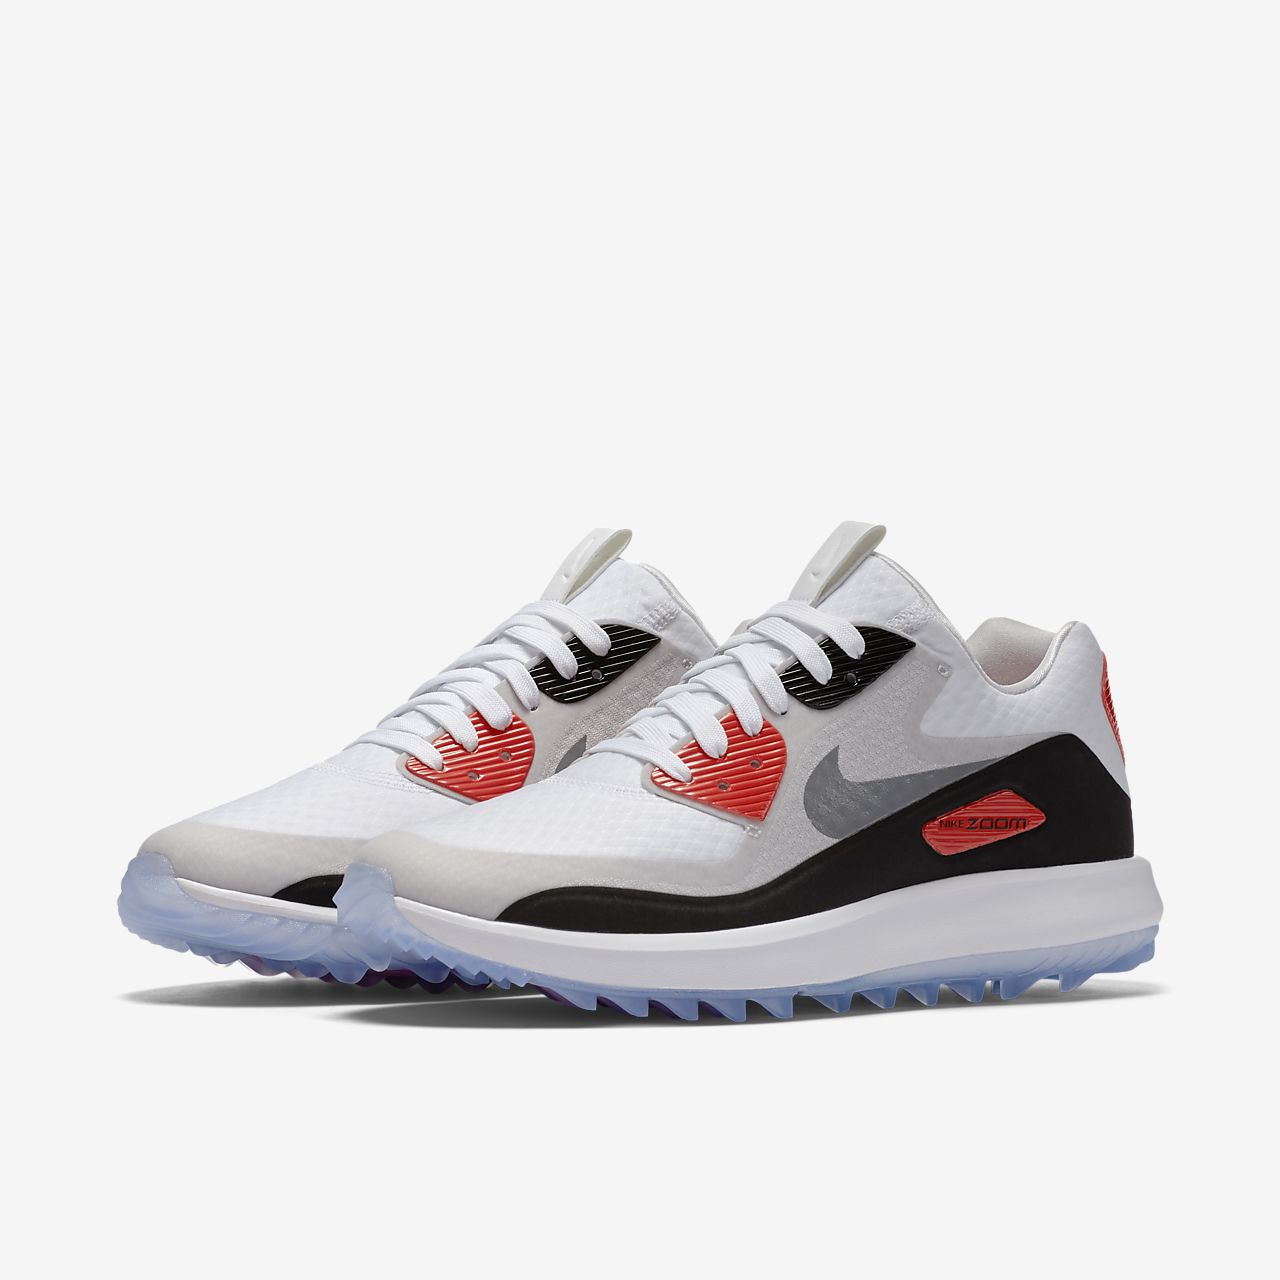 nike air max 90 golf shoes for sale